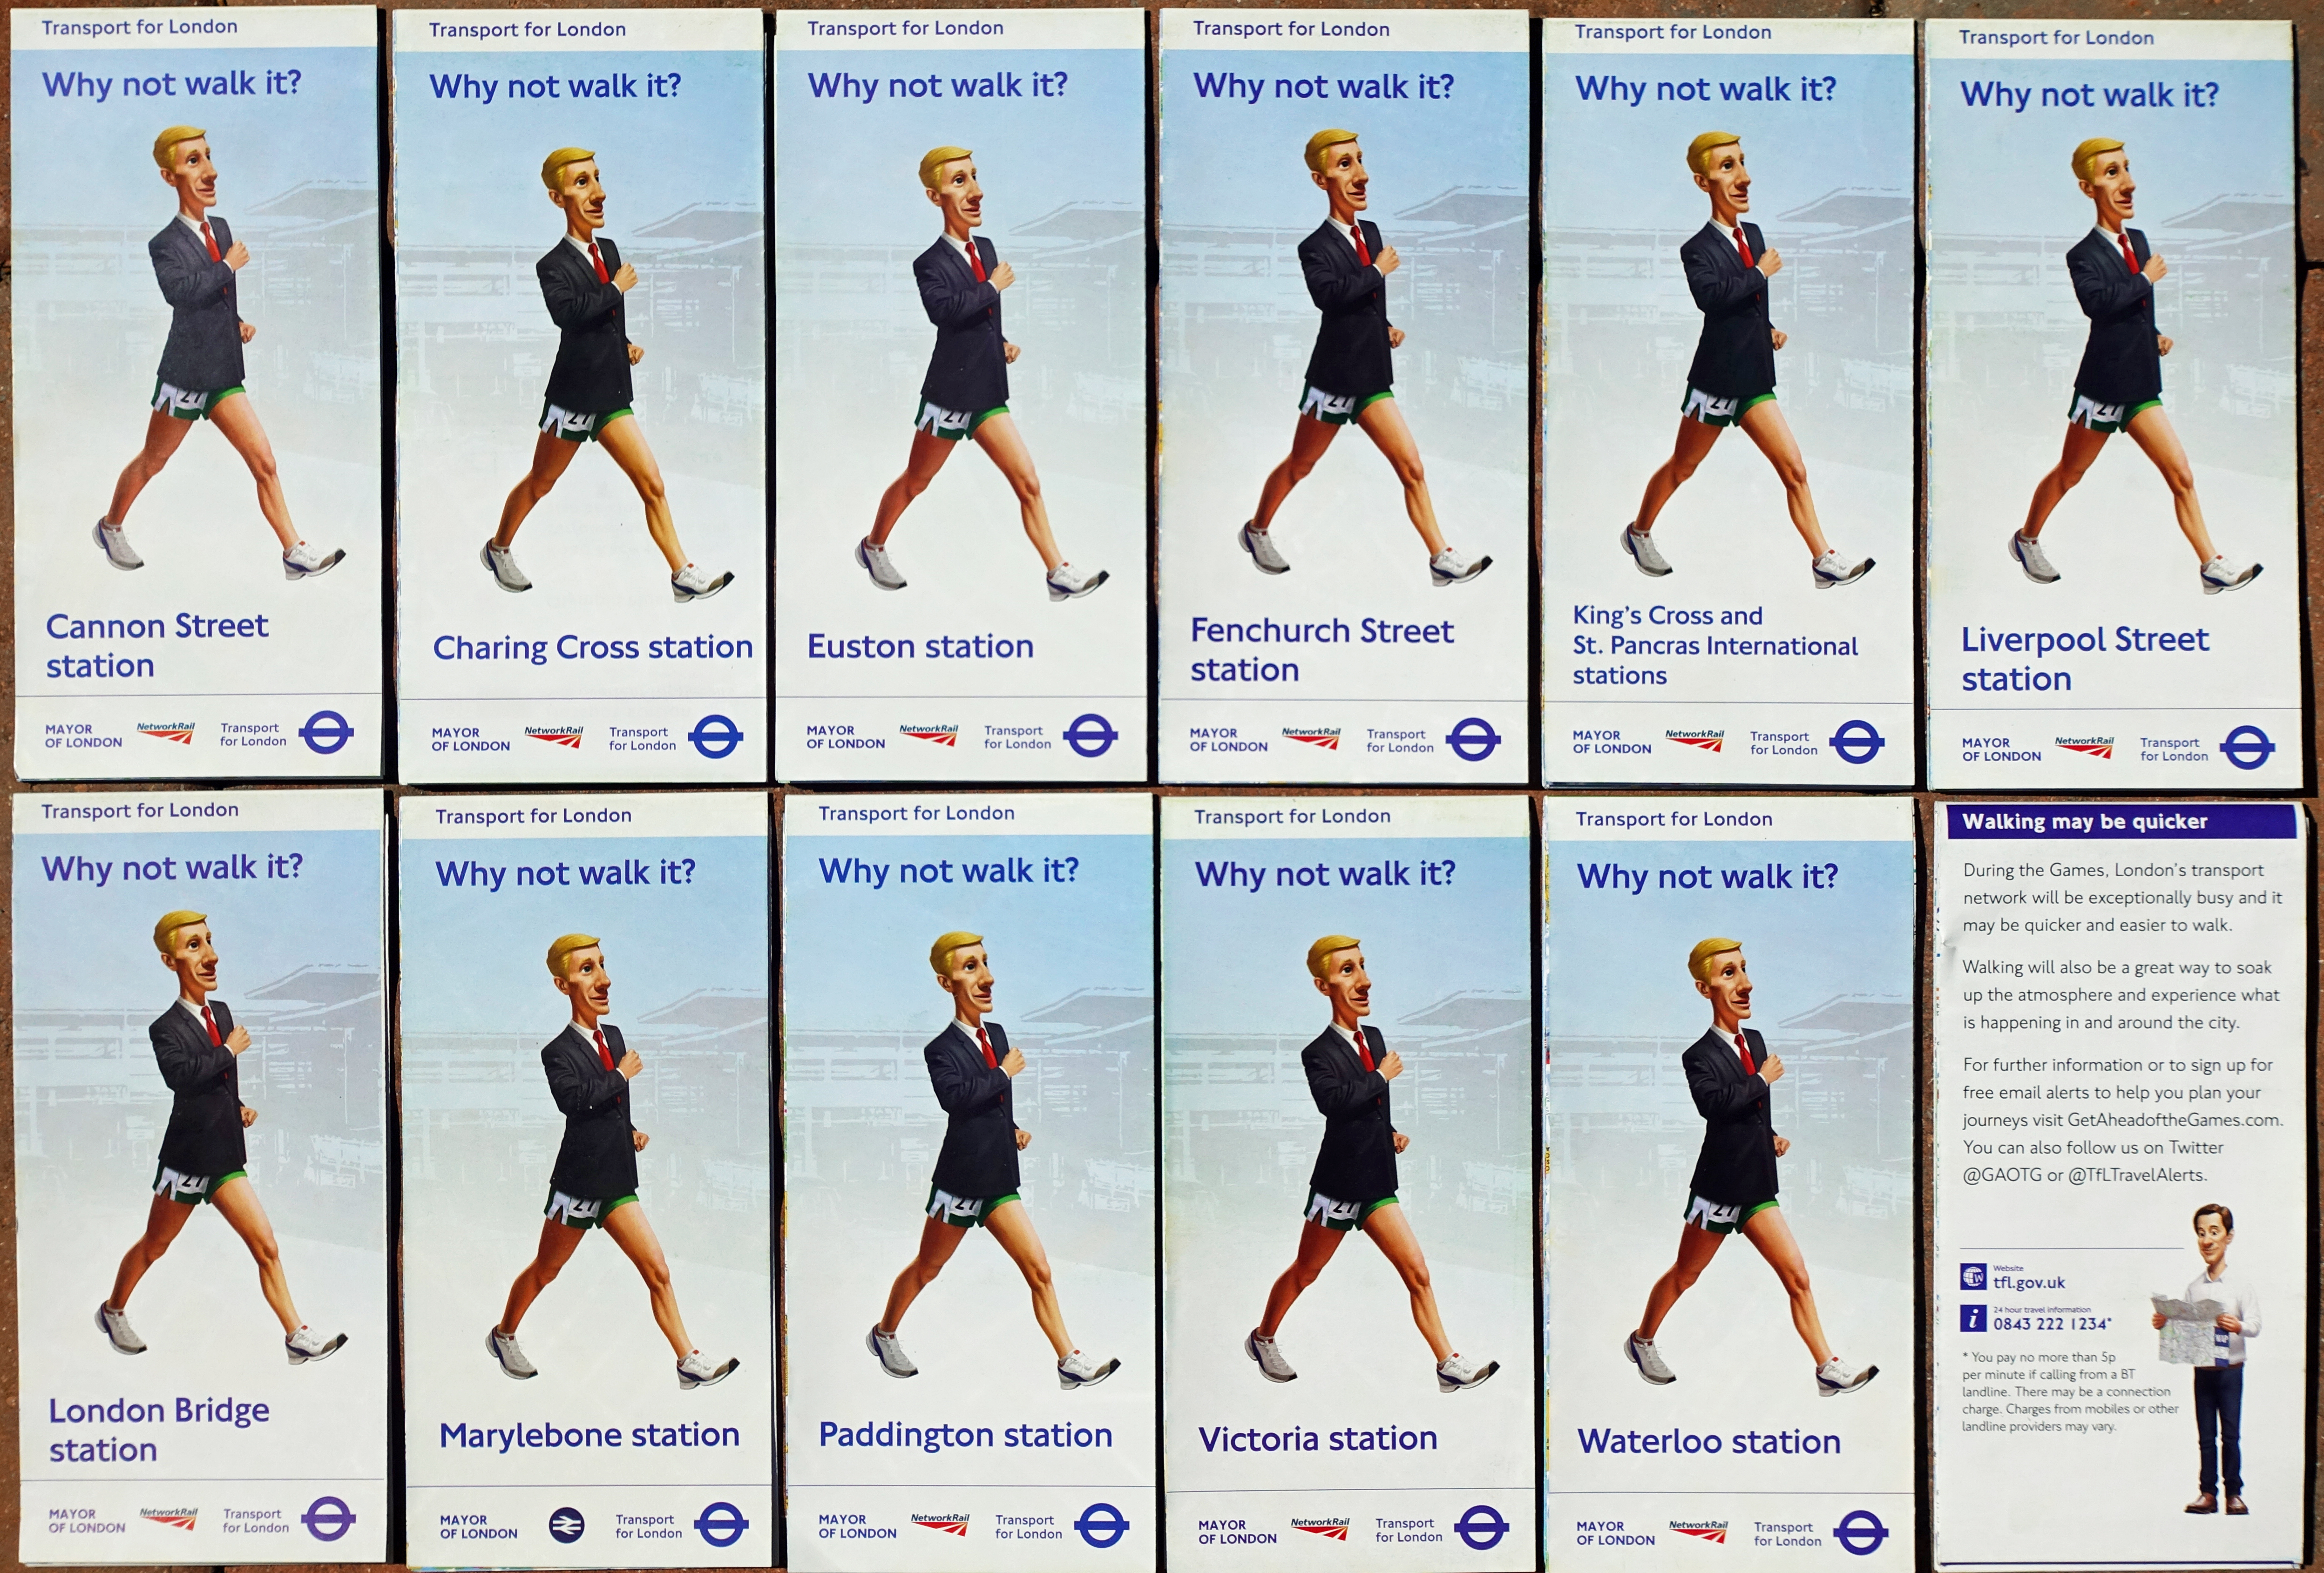 Eleven maps, each centred on a London railway station, were distributed free of charge to aid visitors to London during the 2012 Olympics